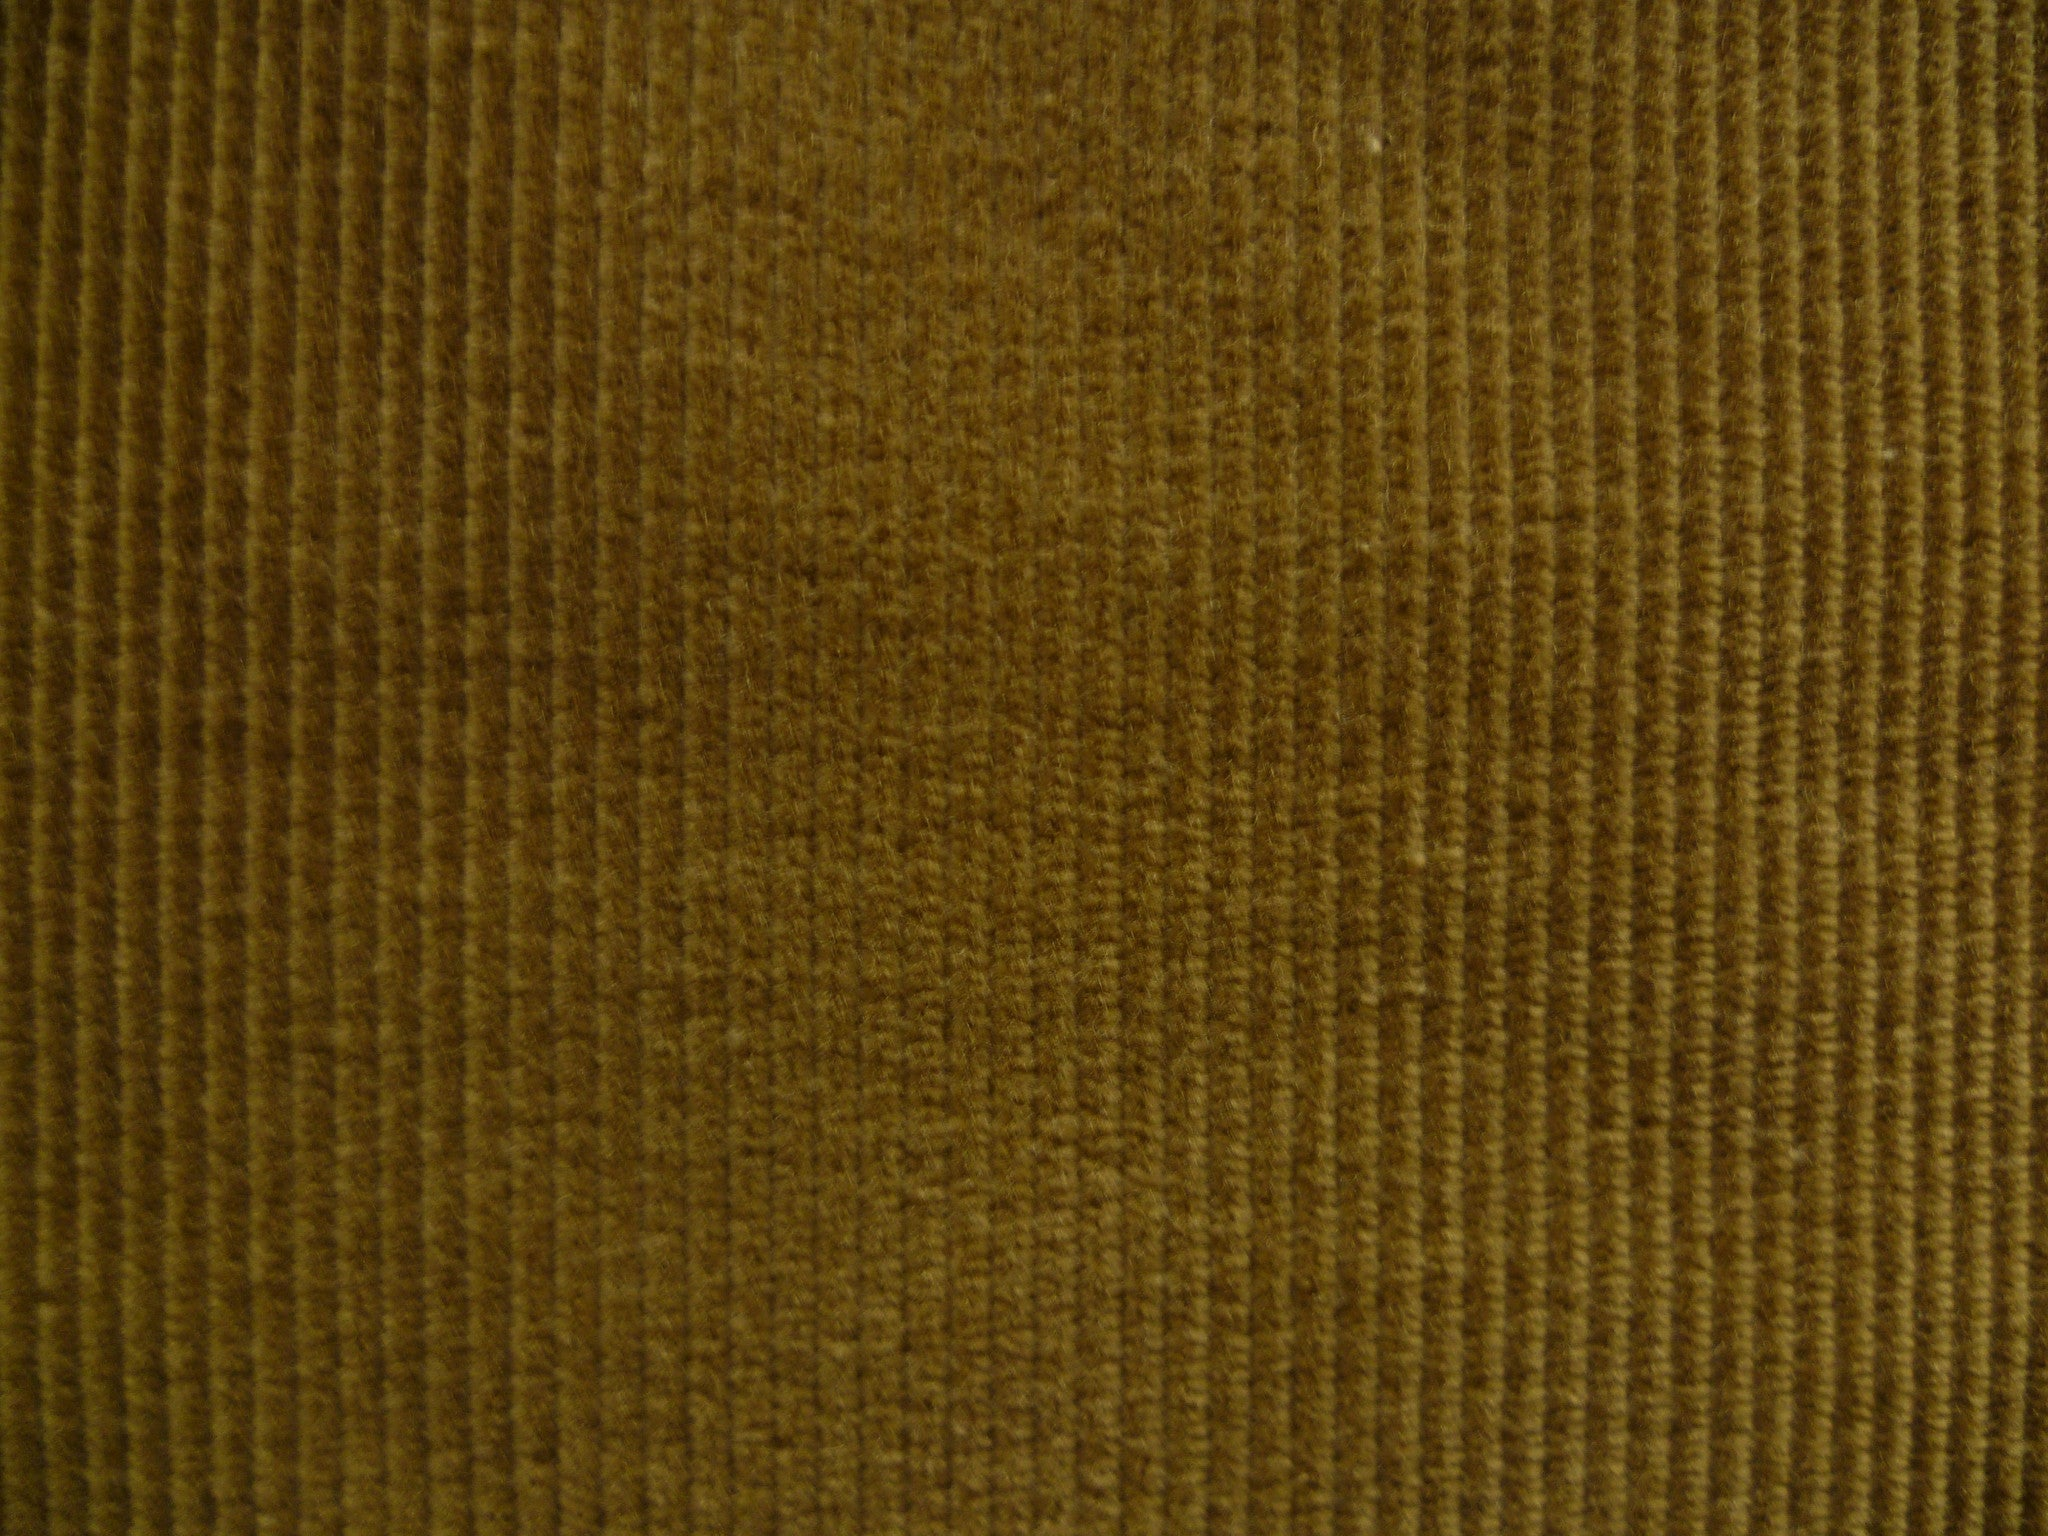 Cotton-Corduroy 10-11 oz